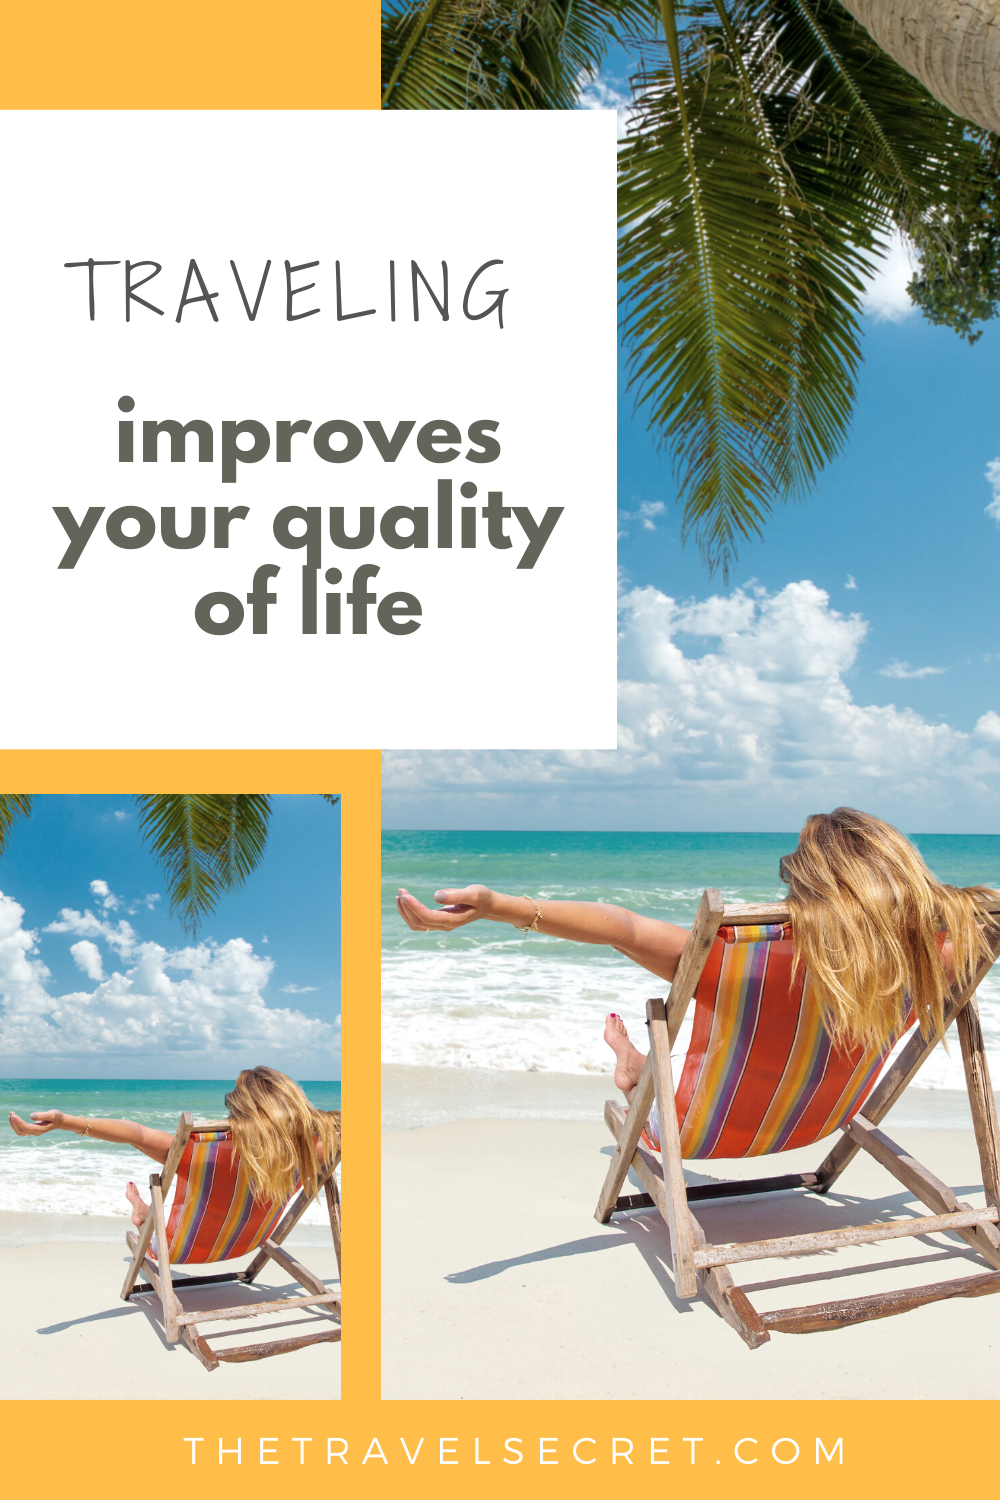 Traveling boosts your quality of life